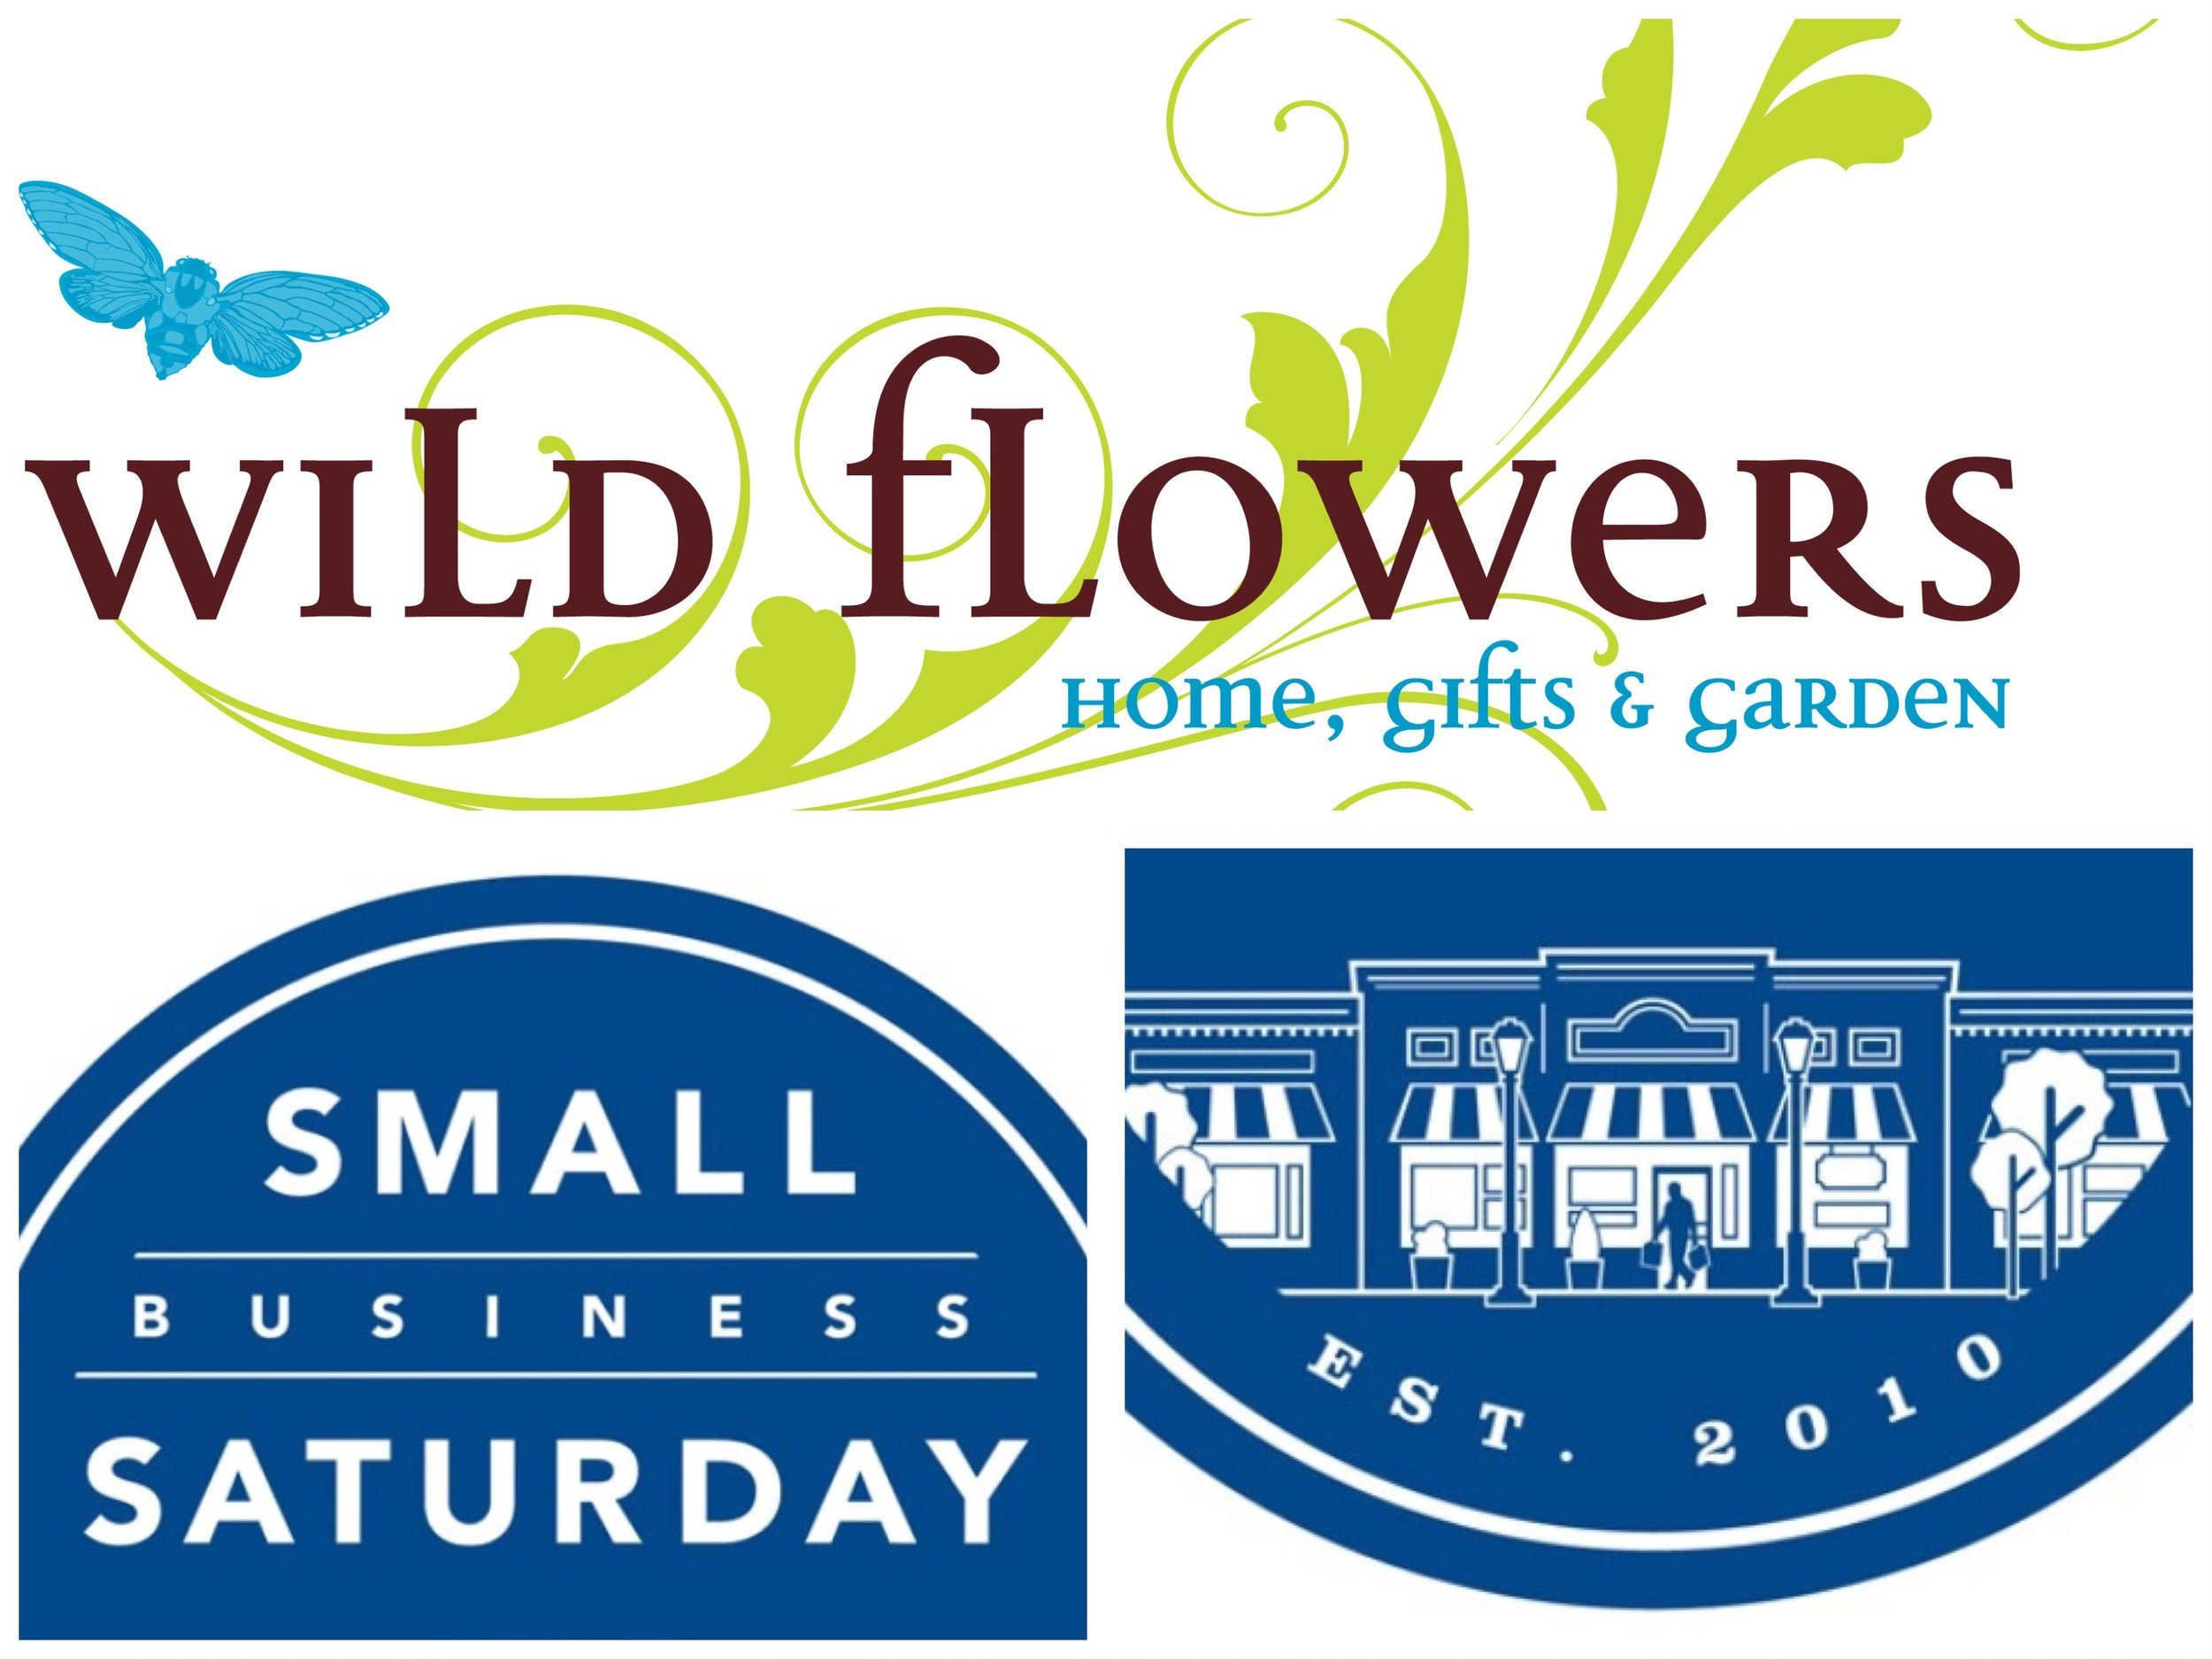 We love being a small business and we love other local small businesses,  Wildflowers Denver , is one of our favorites and the owner just so happens to be one of our loyal clients. Stop in the store to check out all the goodies they have to offer for the season. Support local and tell the owner, Jonah, we sent you! We look forward to seeing you in our regular Saturday morning classes!